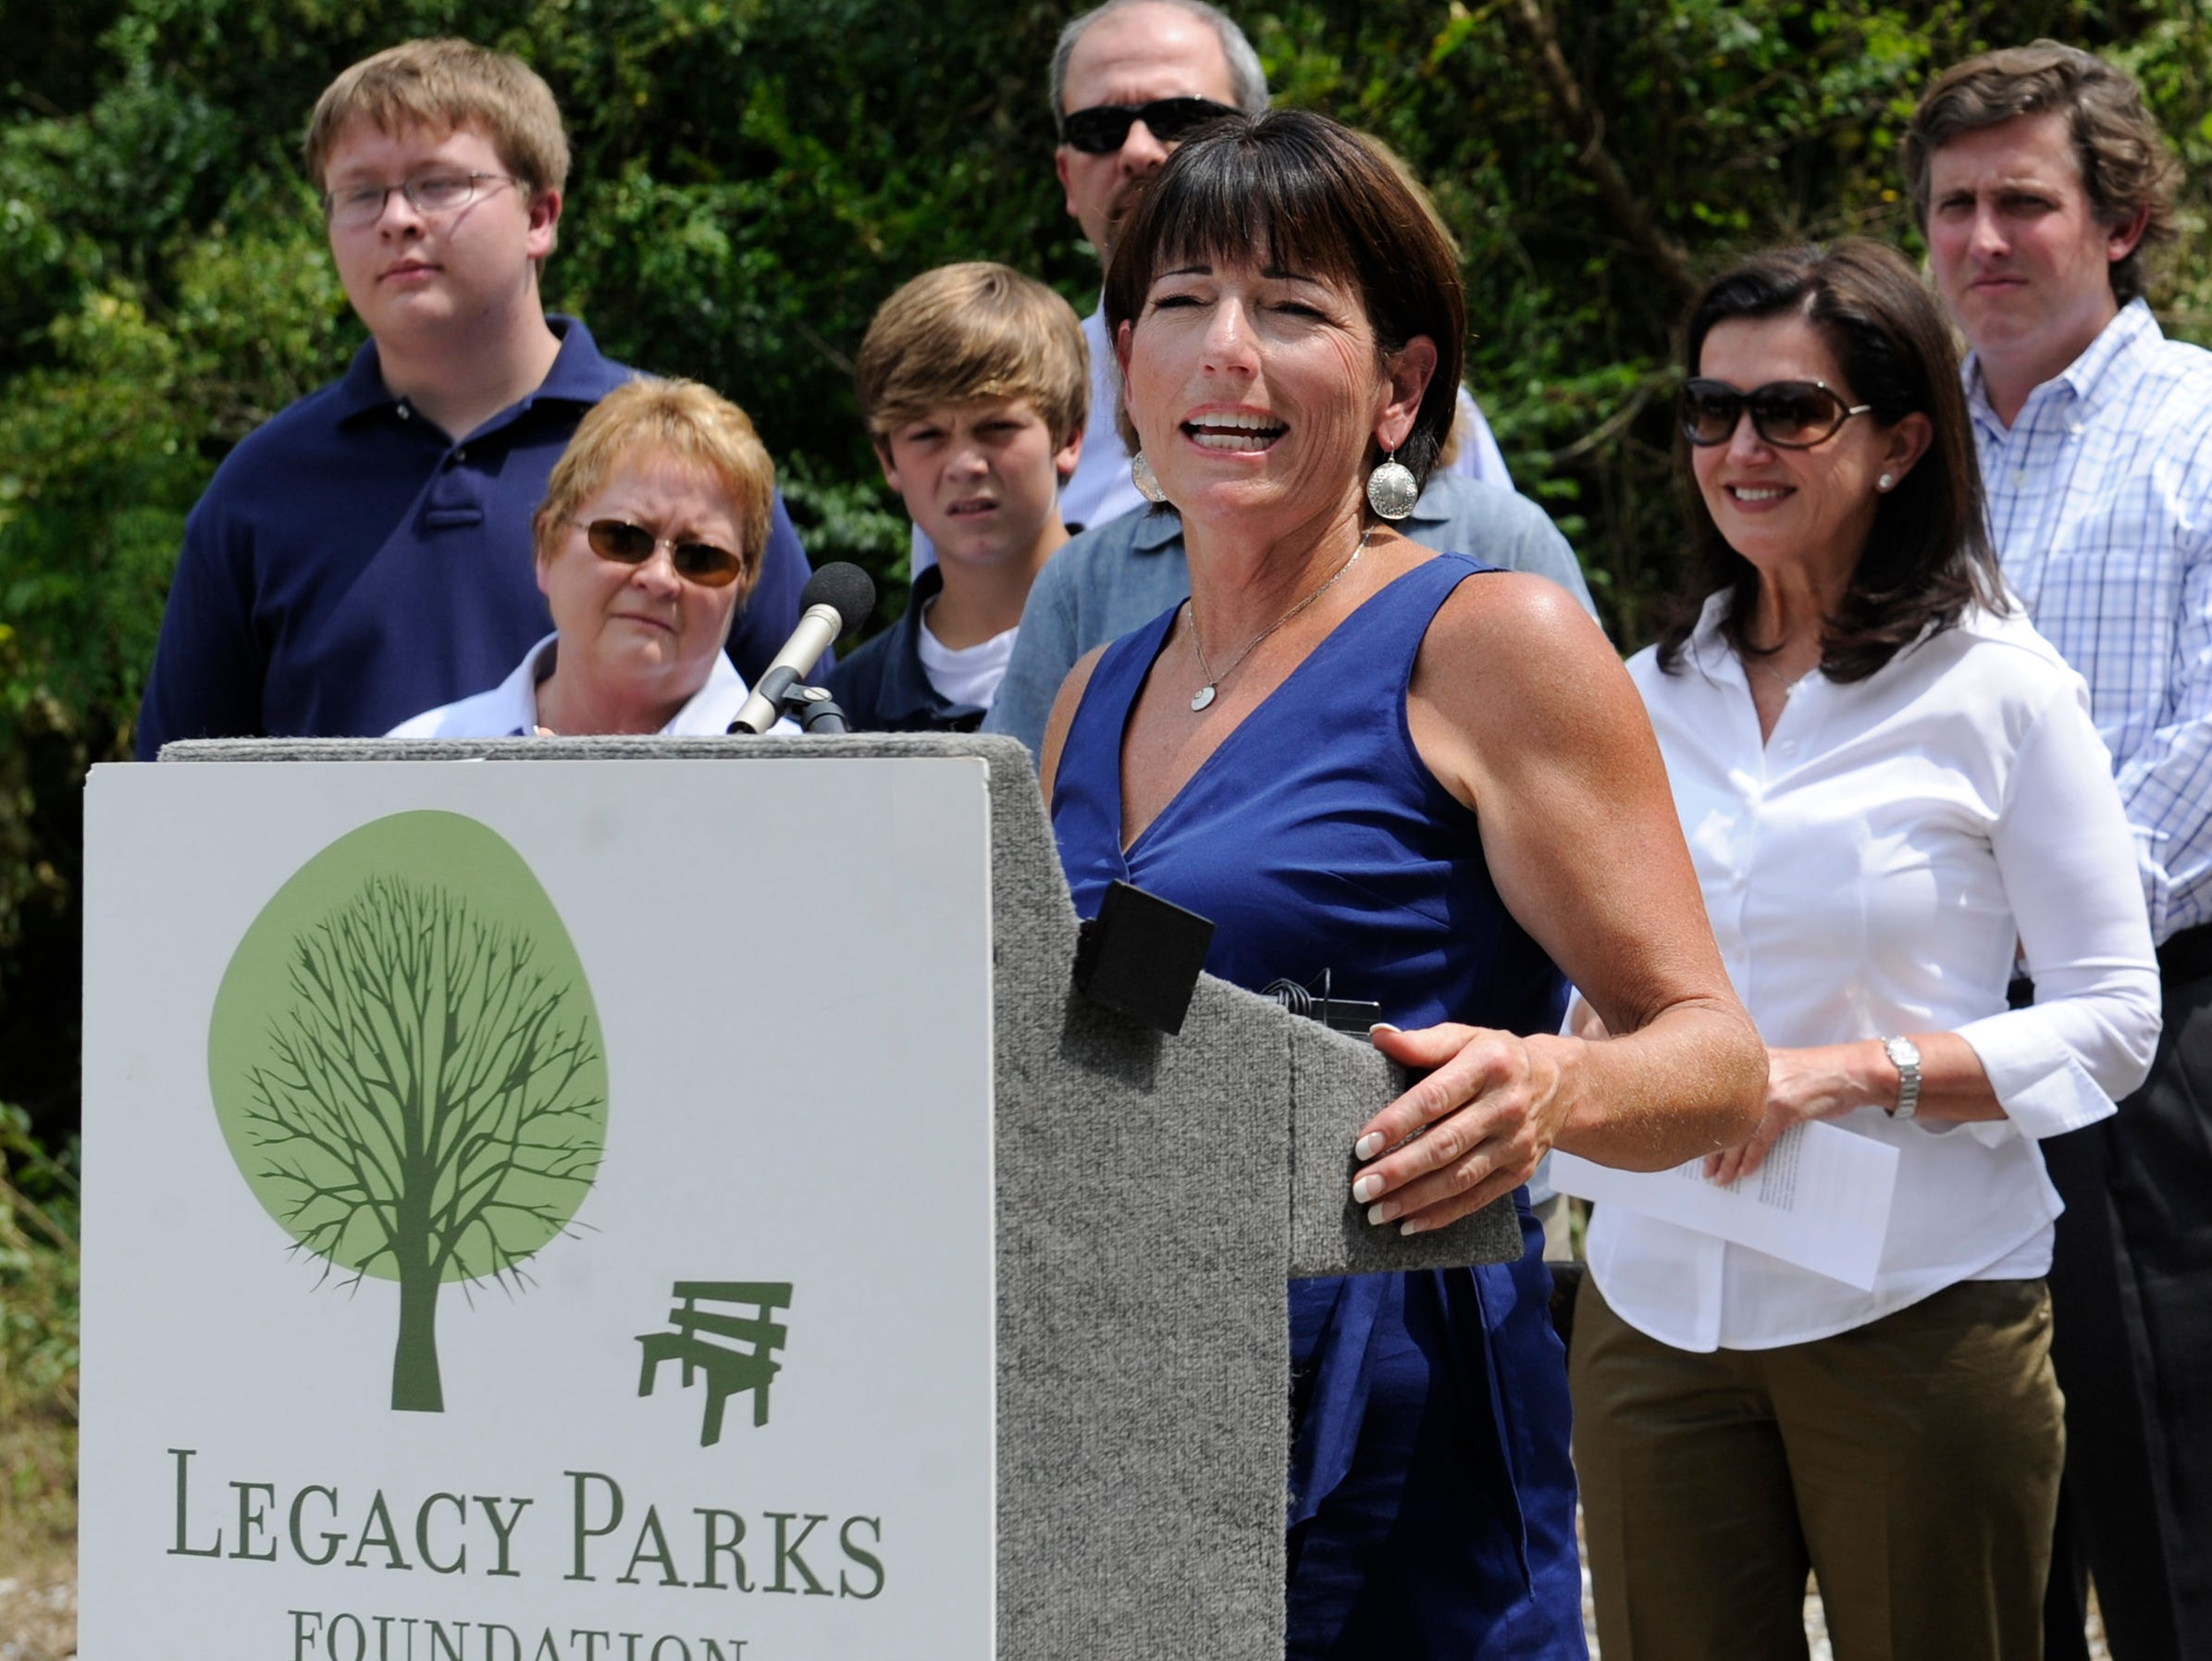 Carol Evans, executive director of the Legacy Parks Foundation, addresses the crowd as the LPF announces an expansion to Knoxville's Urban Wilderness, Tuesday, Aug. 27, 2013. The Wood Family donated 100 acres of future trail and park land, located off Taylor Rd.